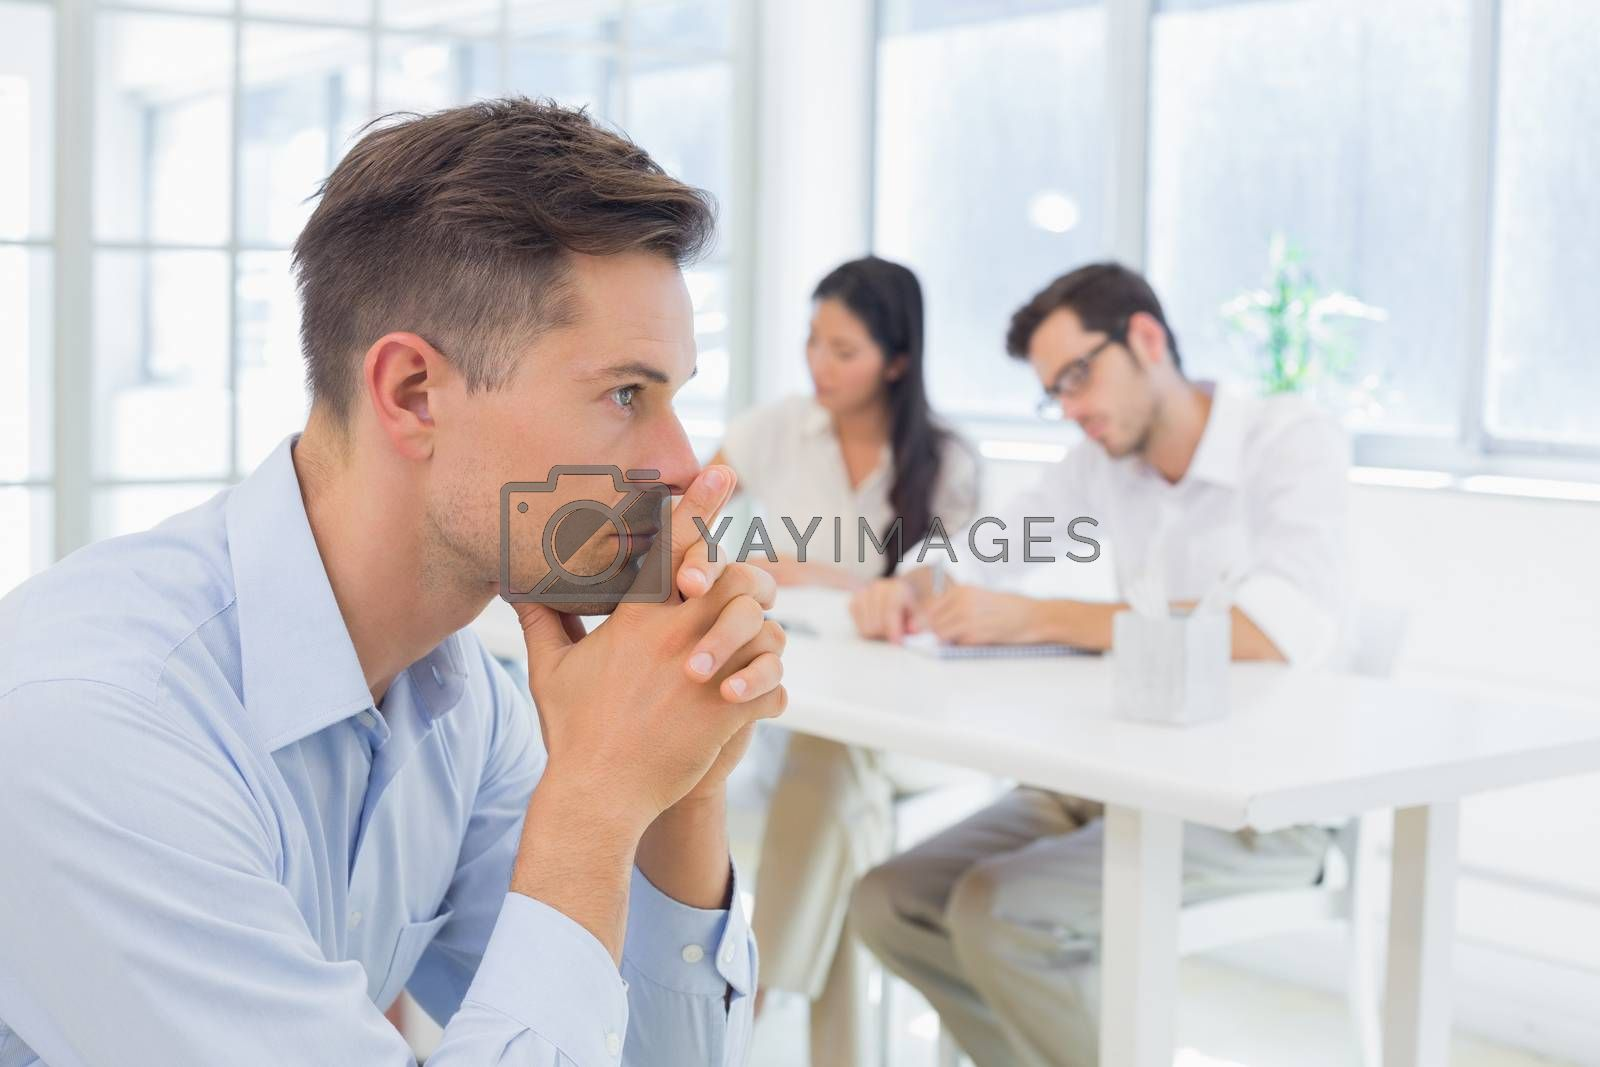 Royalty free image of Casual businessman thinking with team behind him by Wavebreakmedia